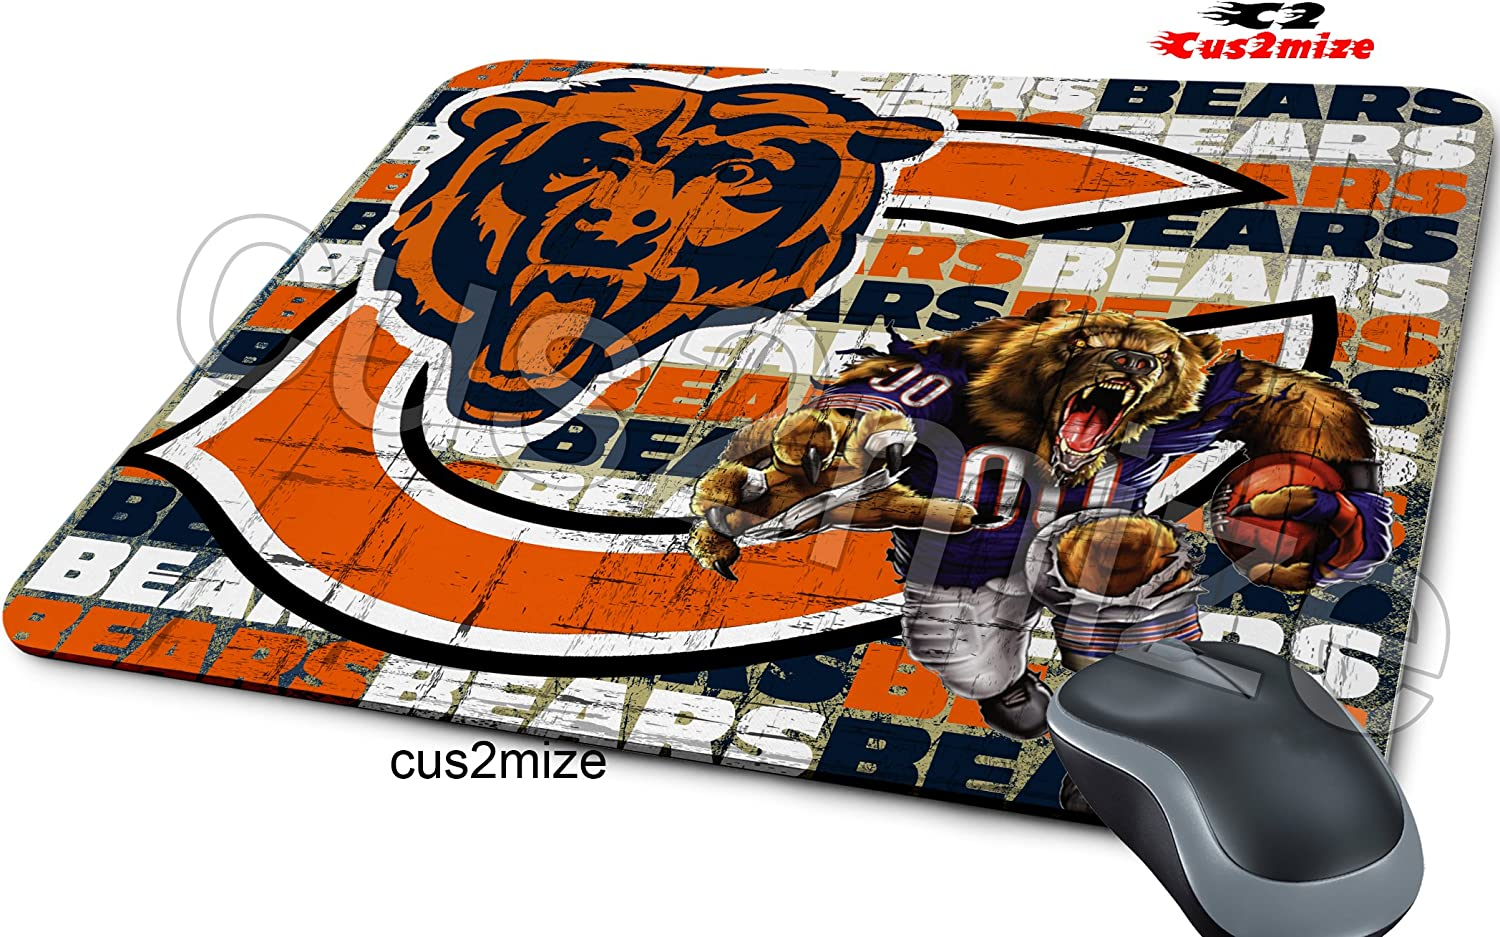 Chicago Bears Mouse Pad Chicago Bears Mousepad Sold By Cus2mize 0723736675129